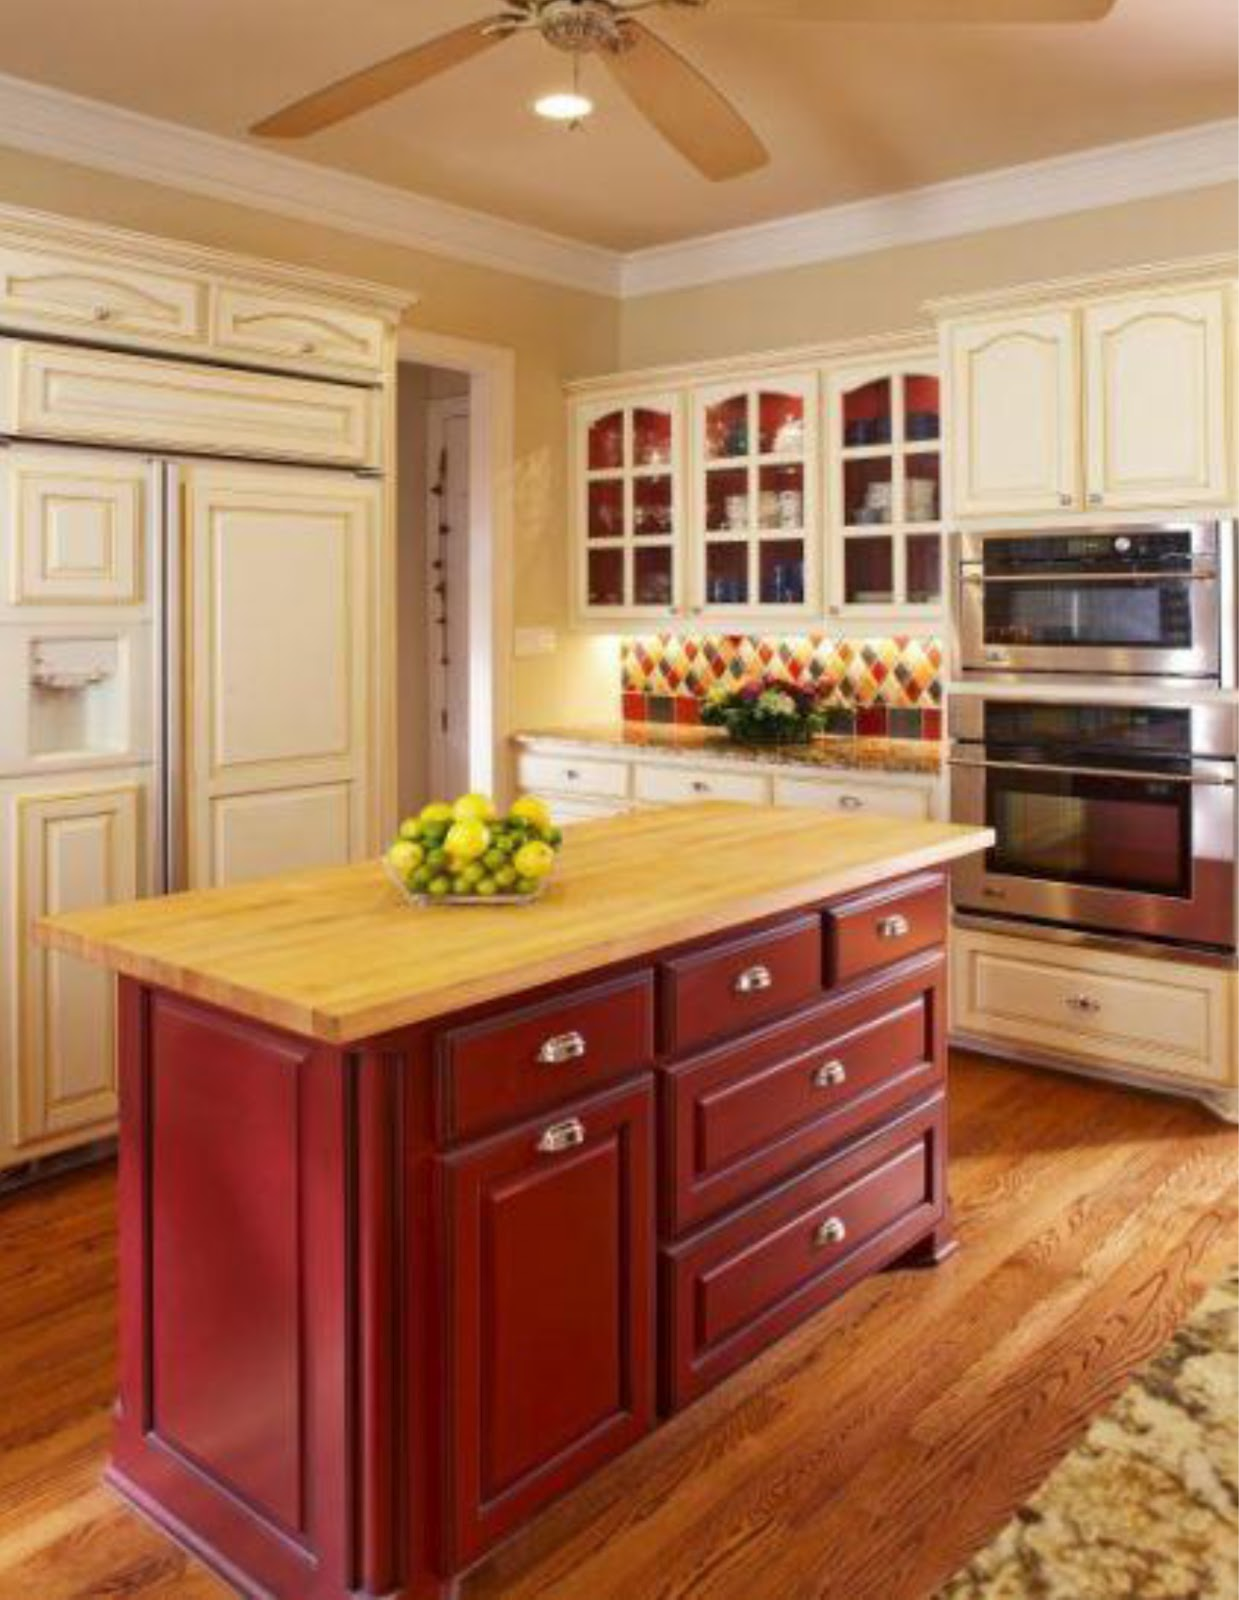 Colors Kitchen Cabinets Simplifying Remodeling June 2012